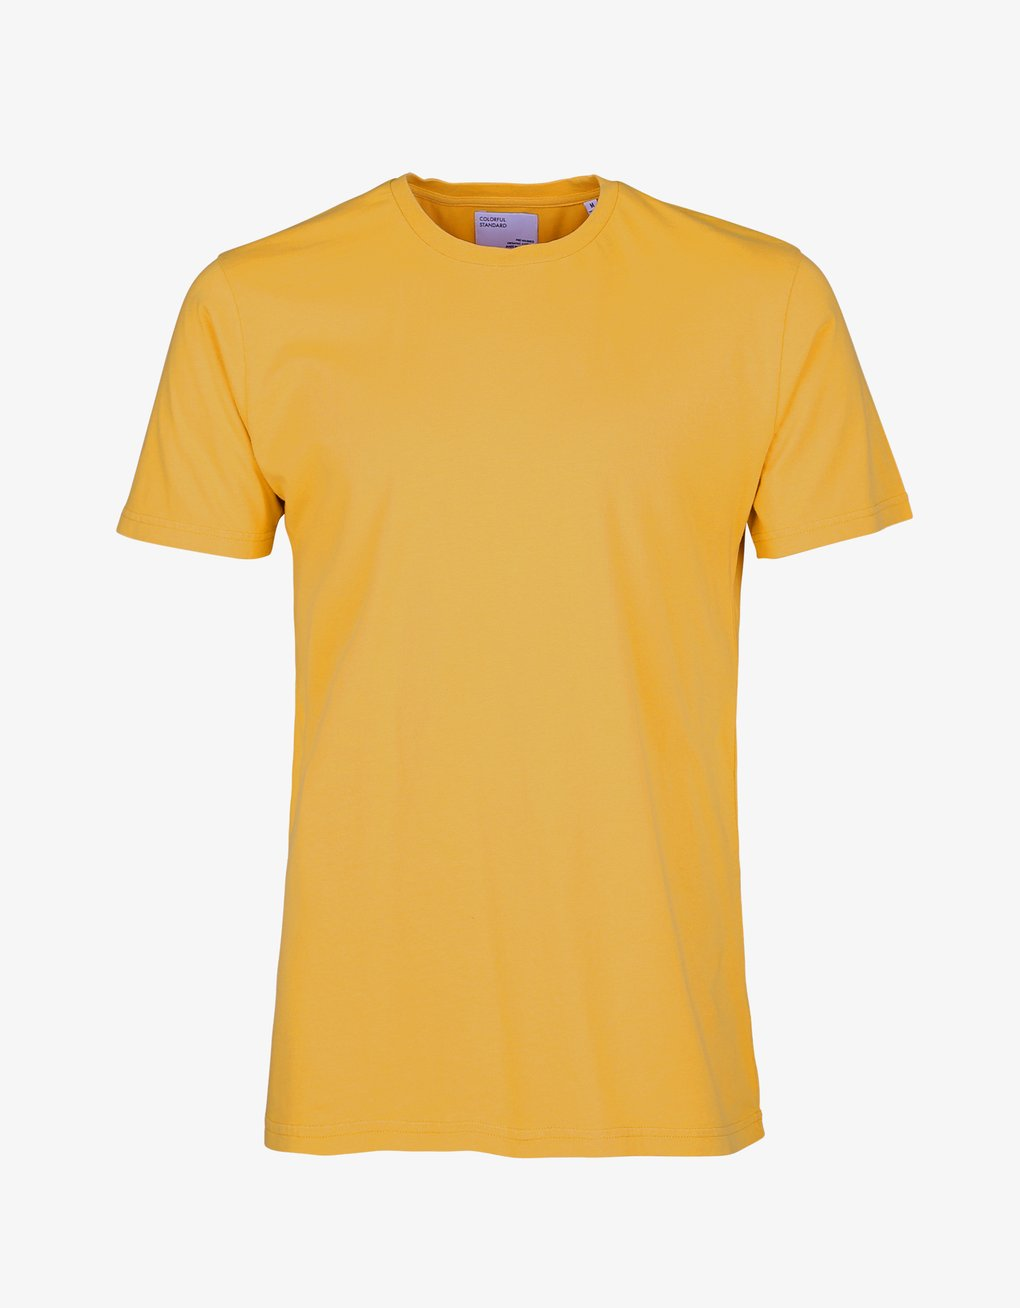 Unisex Classic Organic Tee - Burned Yellow